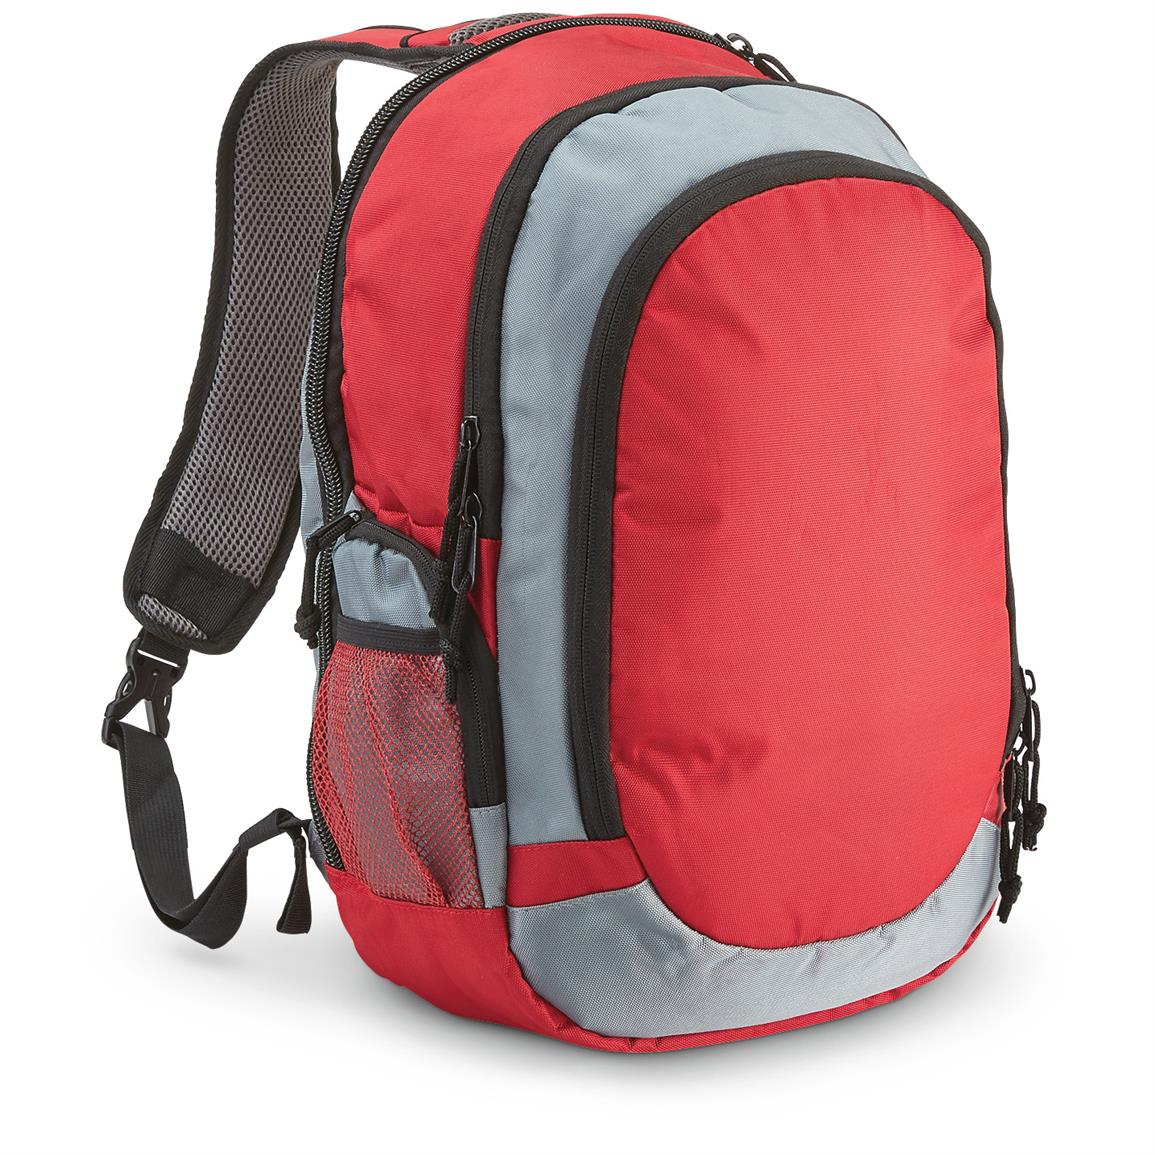 Fox Outdoor Kangaroo Sling Pack, Burgundy